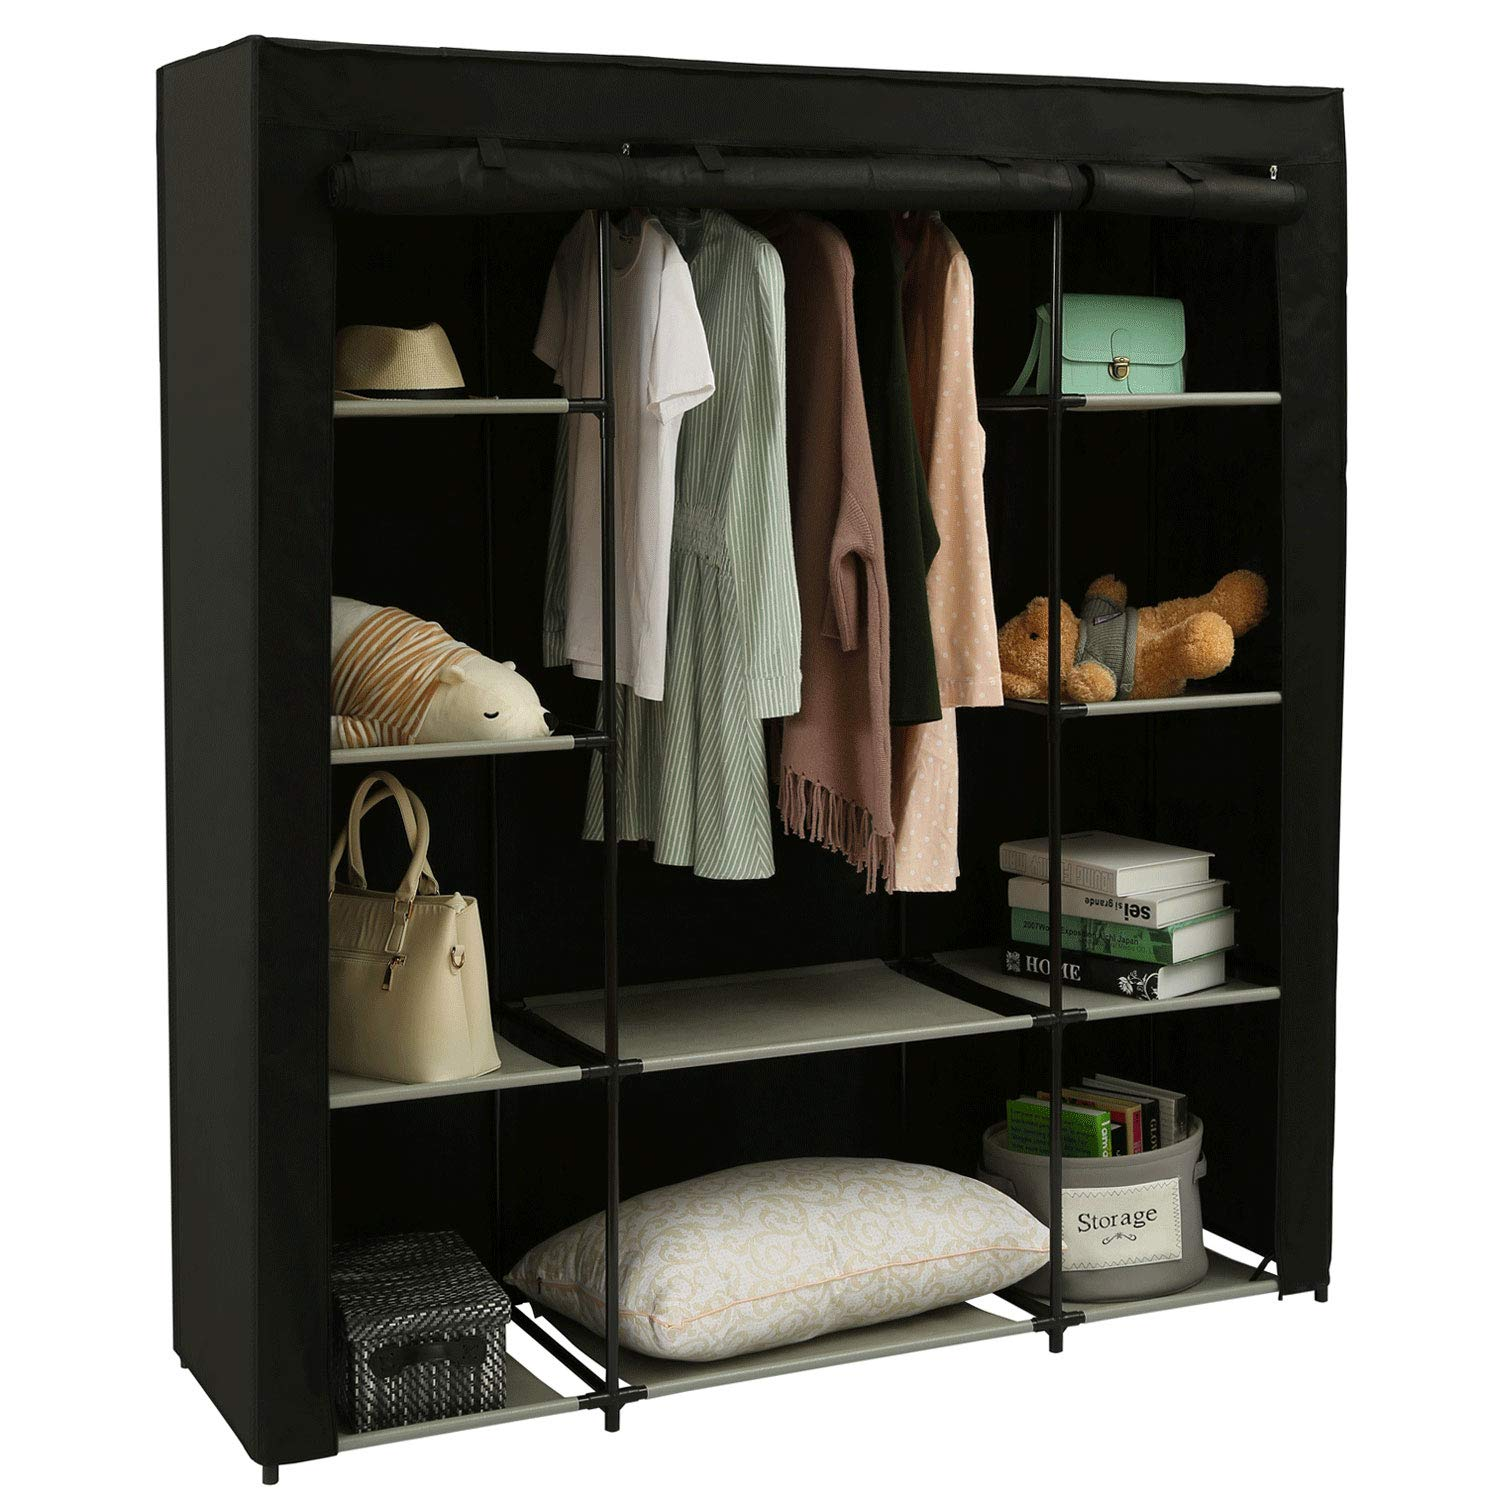 Homebi Clothes Closet Portable Wardrobe Durable Clothes Storage Organizer  Non-woven Fabric Cloth Storage Shelf With Hanging Rod And 10 Shelves For